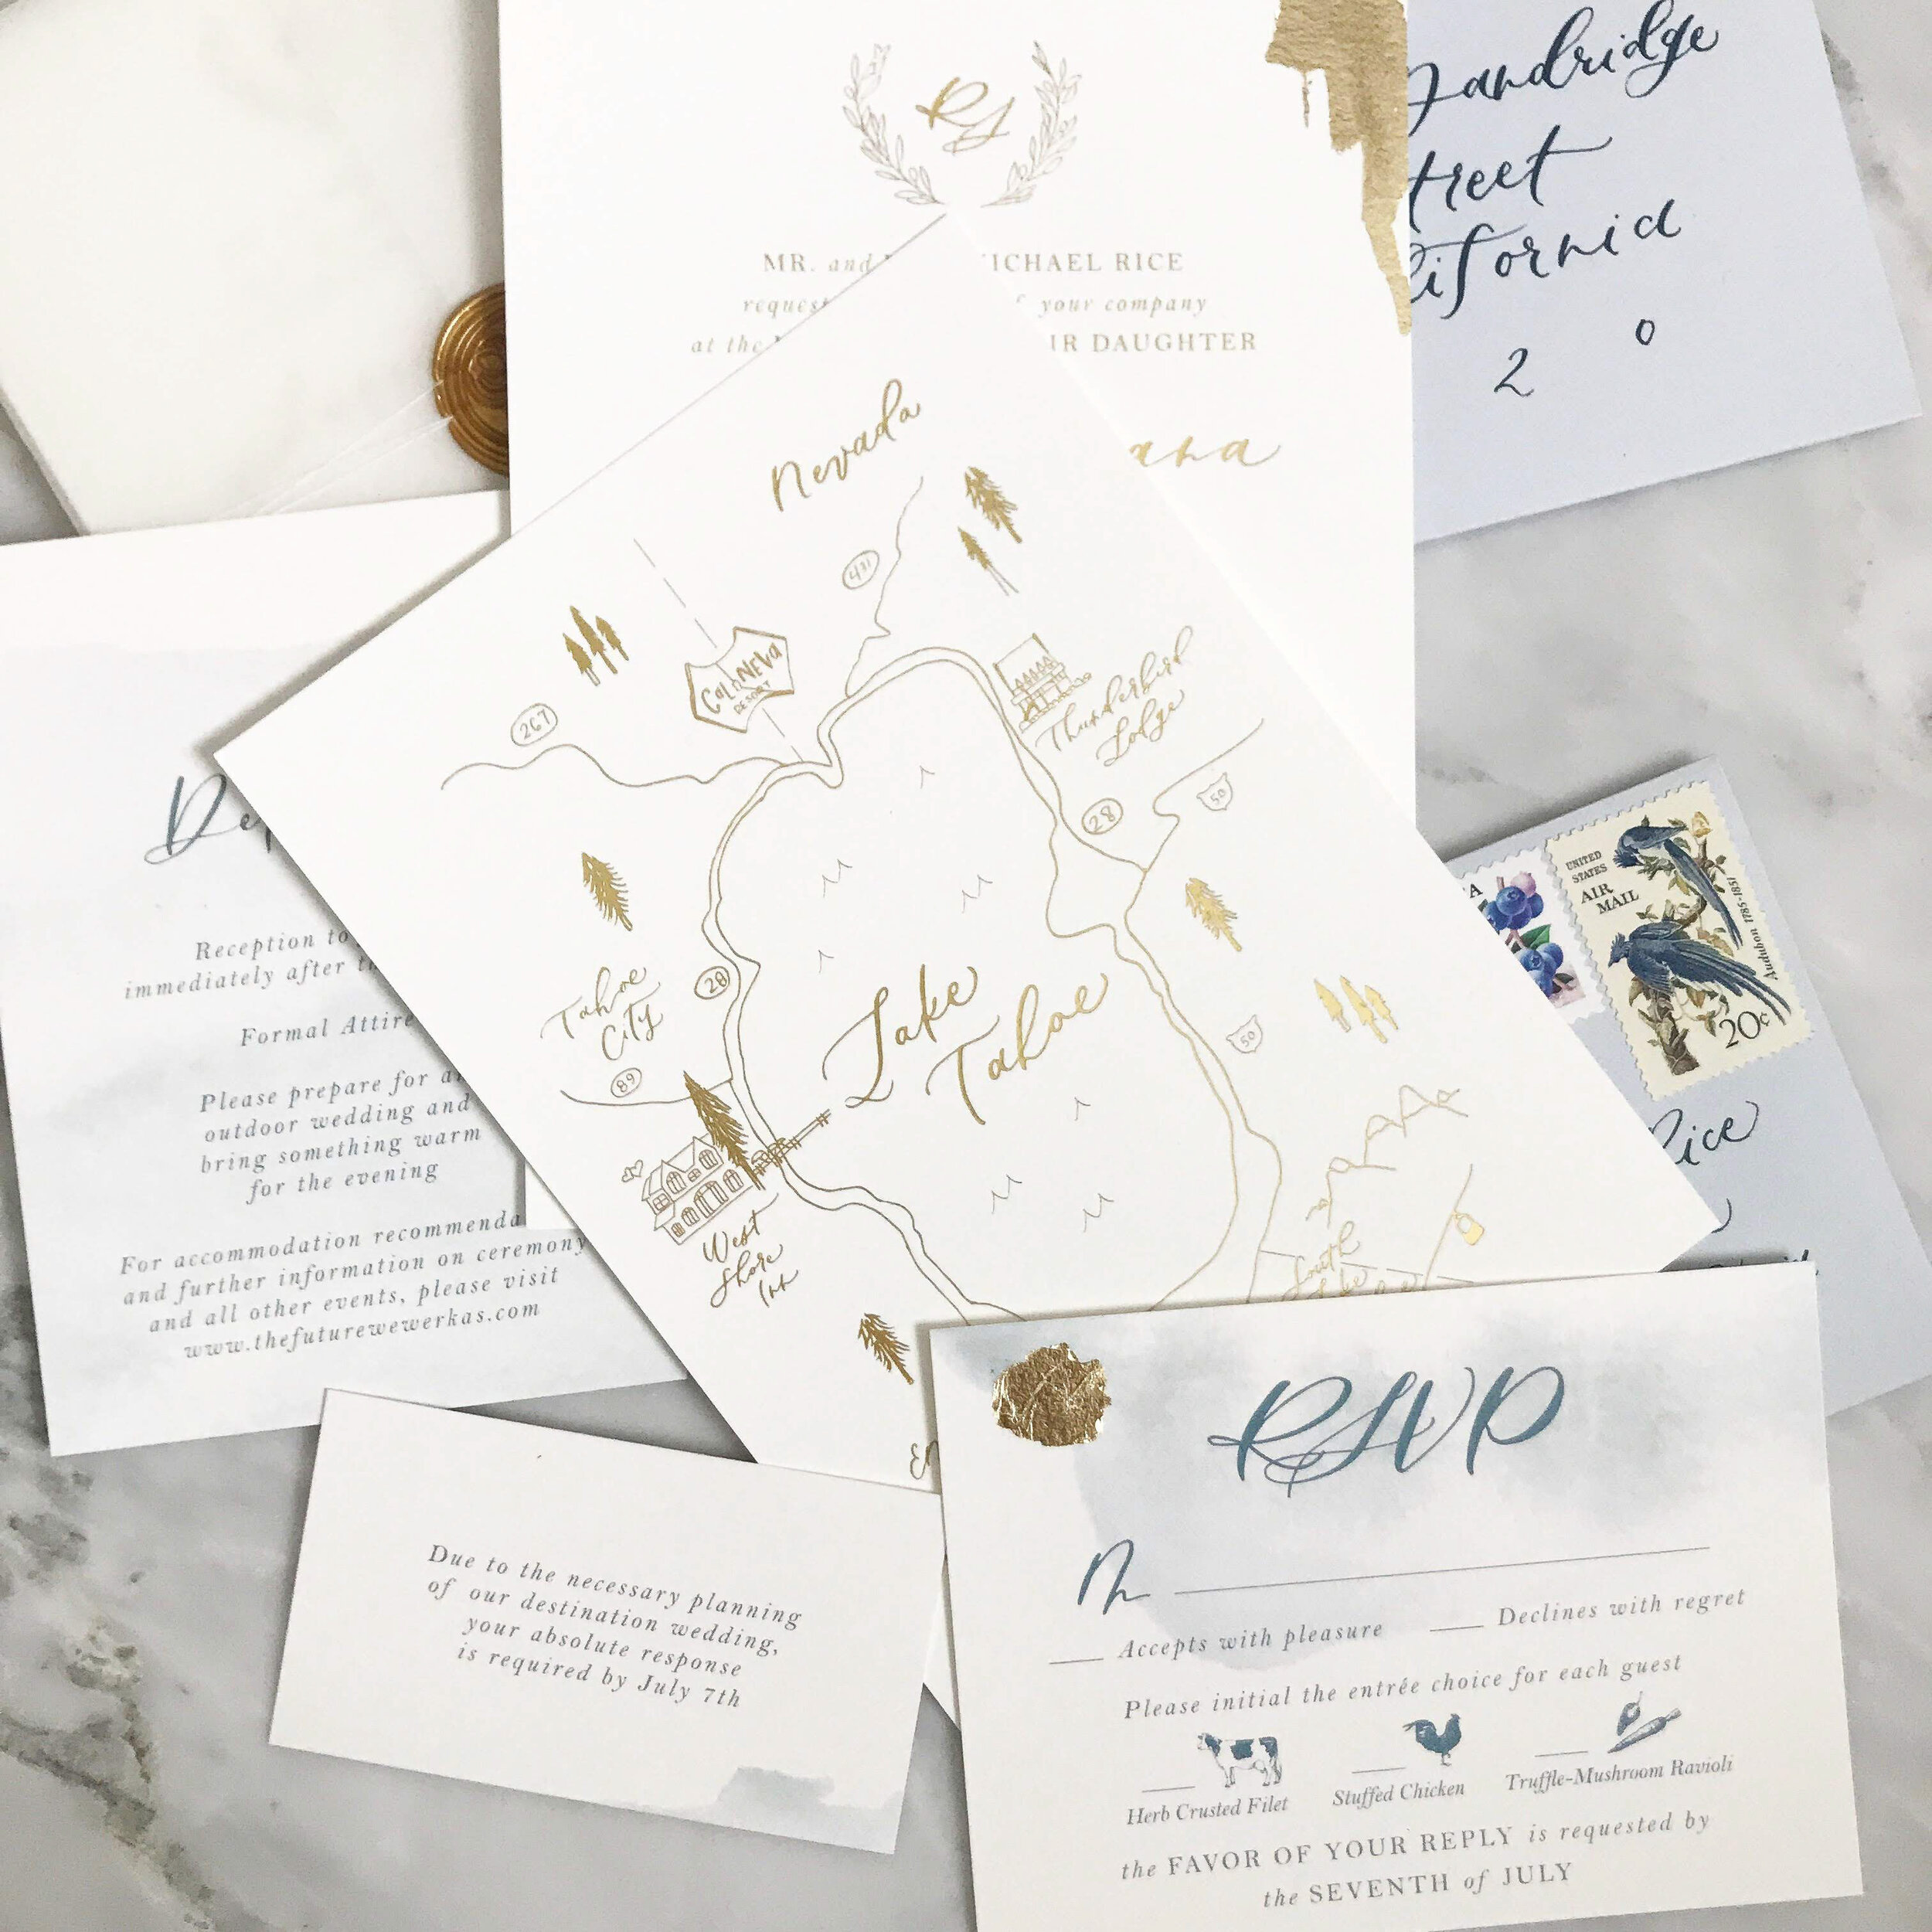 What goes on an invitation map?